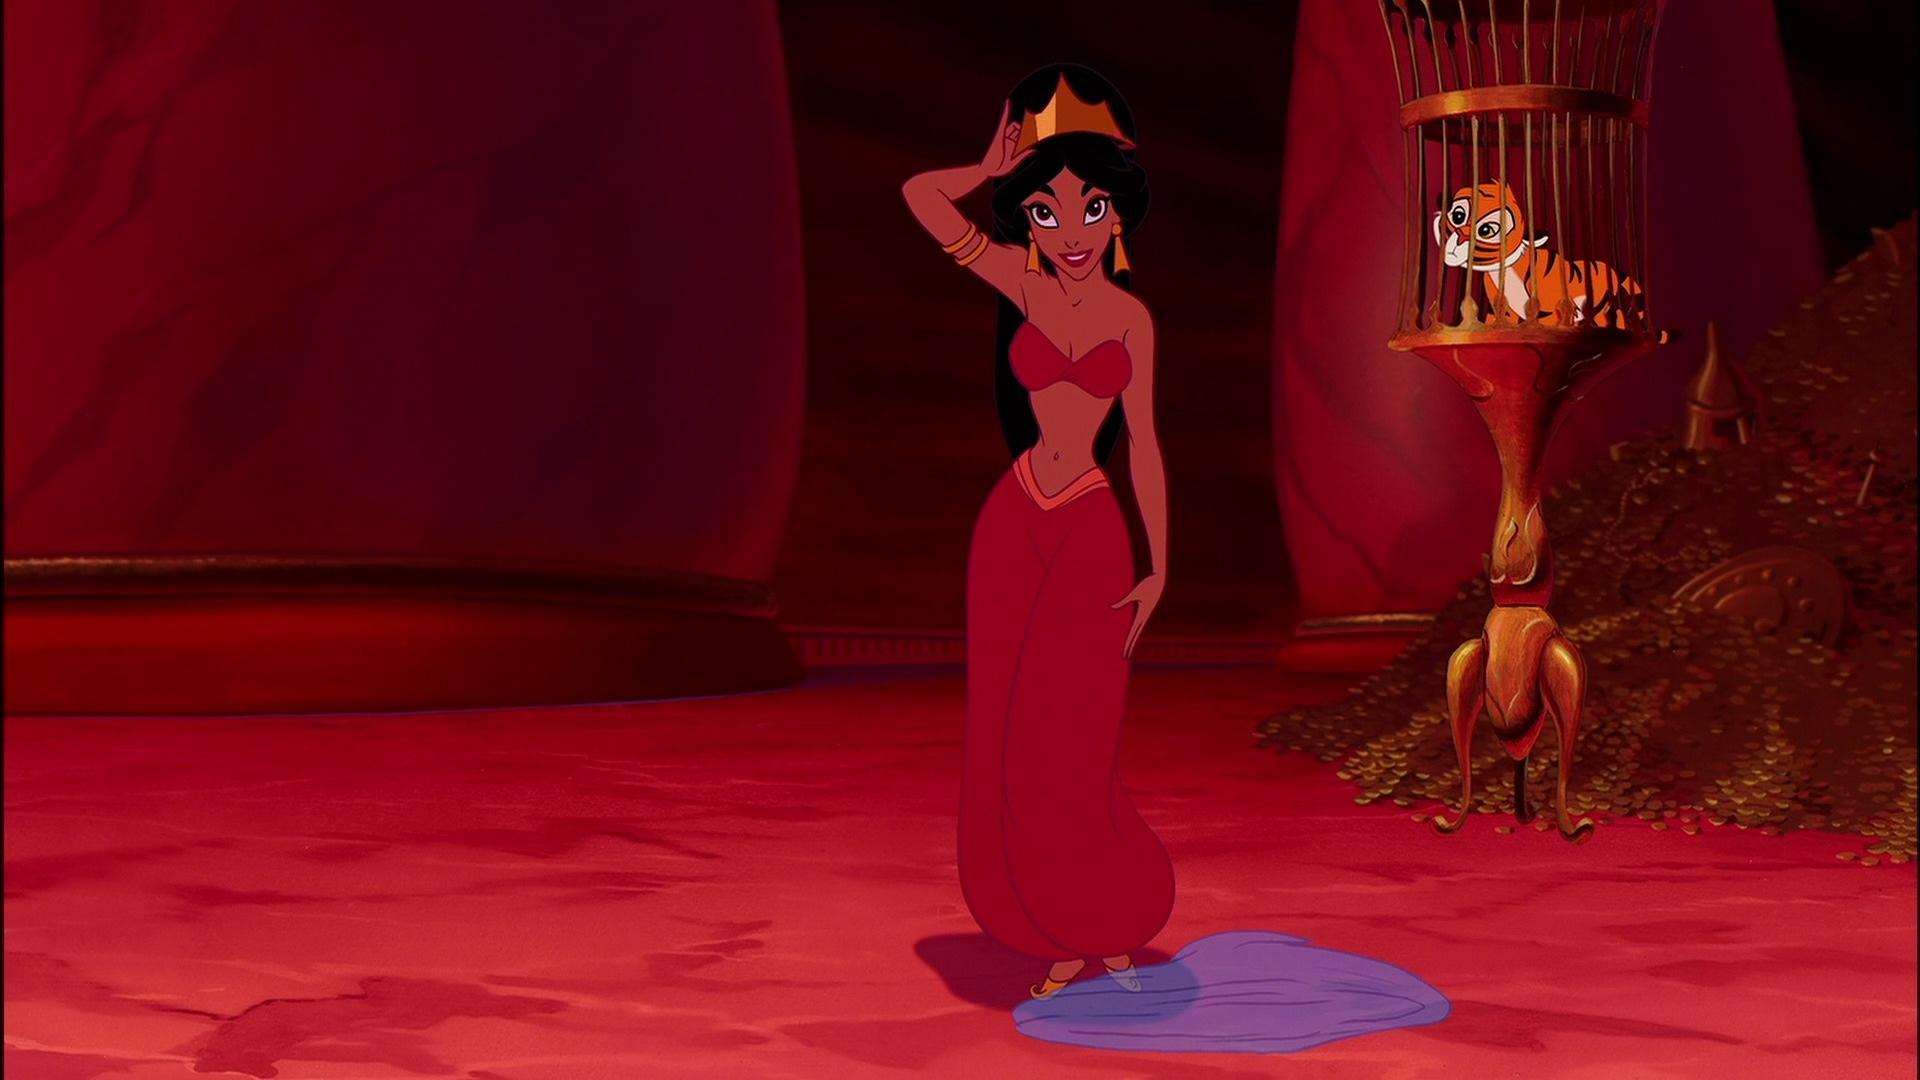 「disney jasmine and jafar」の画像検索結果